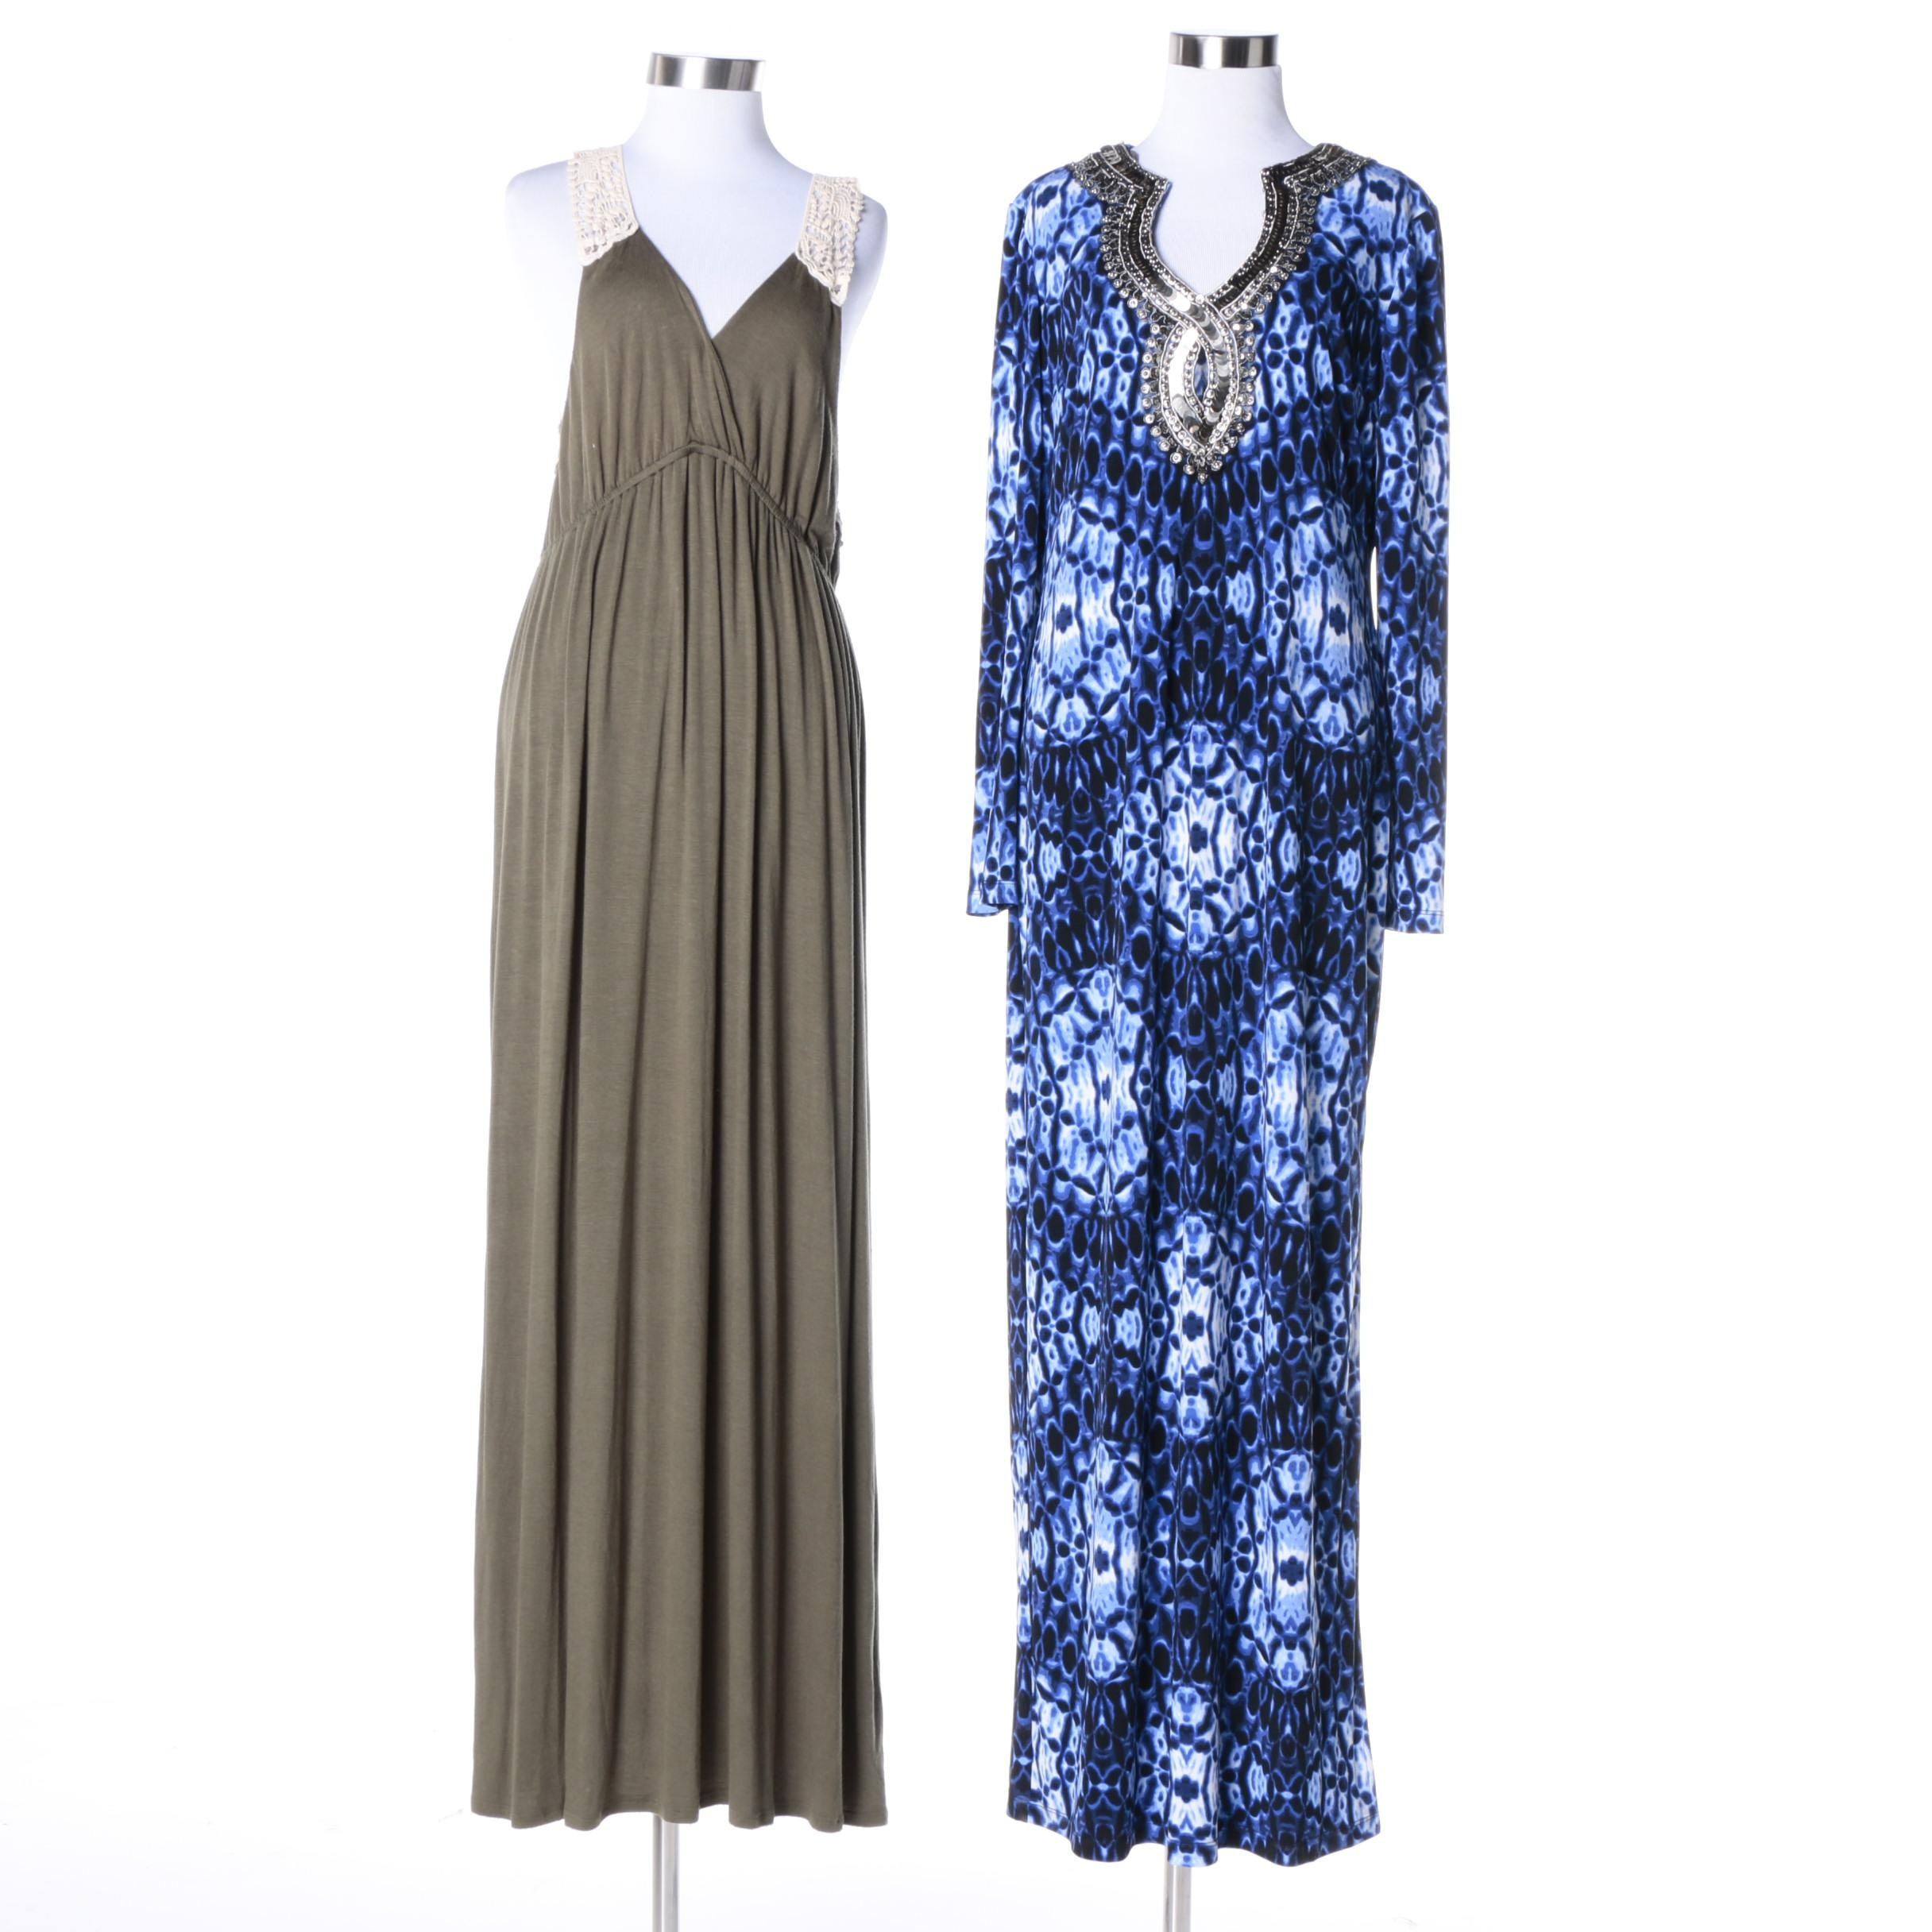 Women's Summer Maxi Dresses